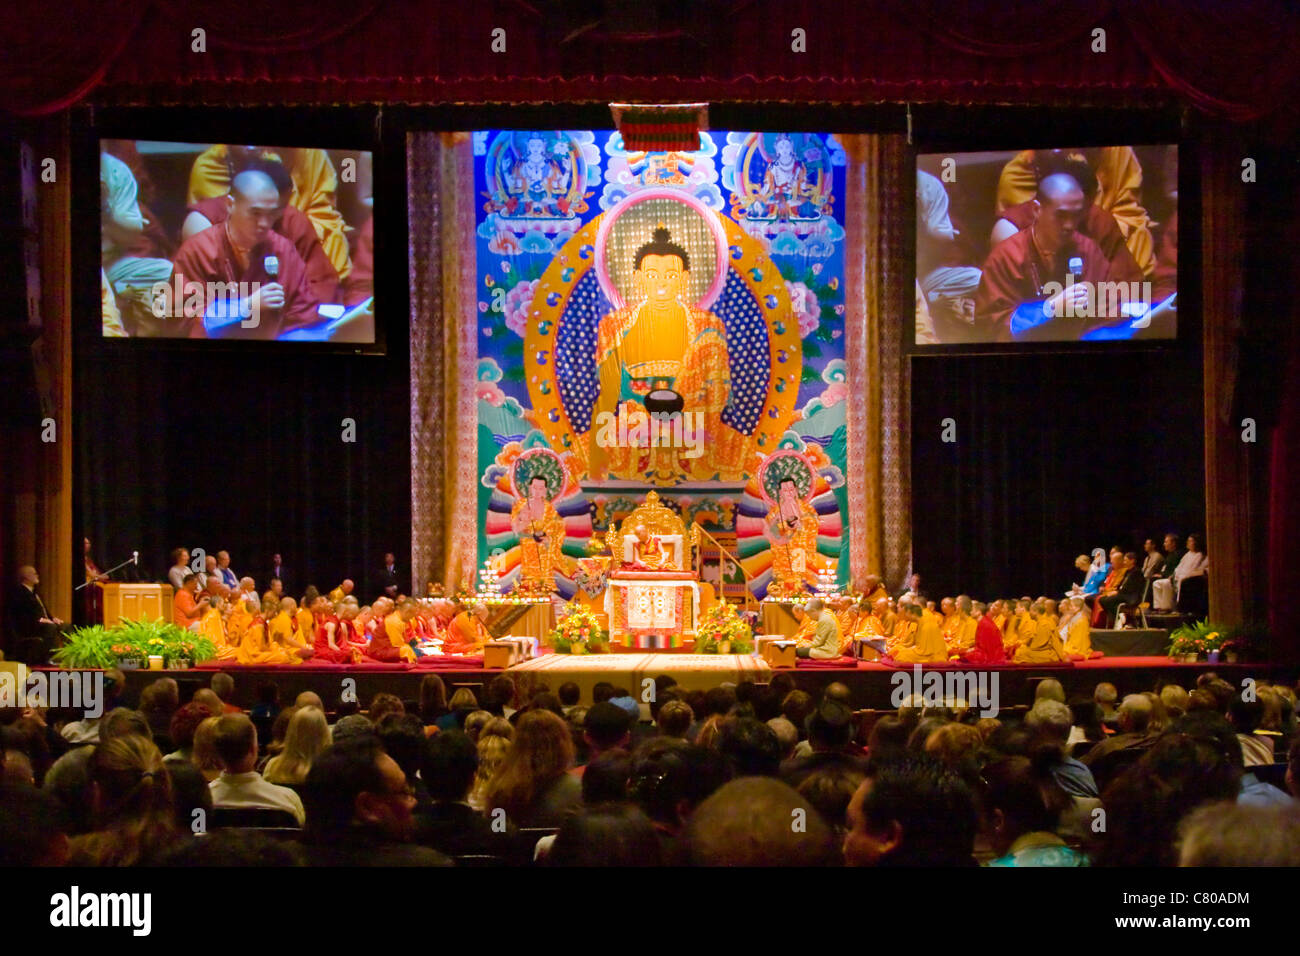 The 14th DALAI LAMA of Tibet teaches Buddhism sponsored by the TIBETAN MONGOLIAN CULTURAL CENTER - BLOOMINGTON, - Stock Image